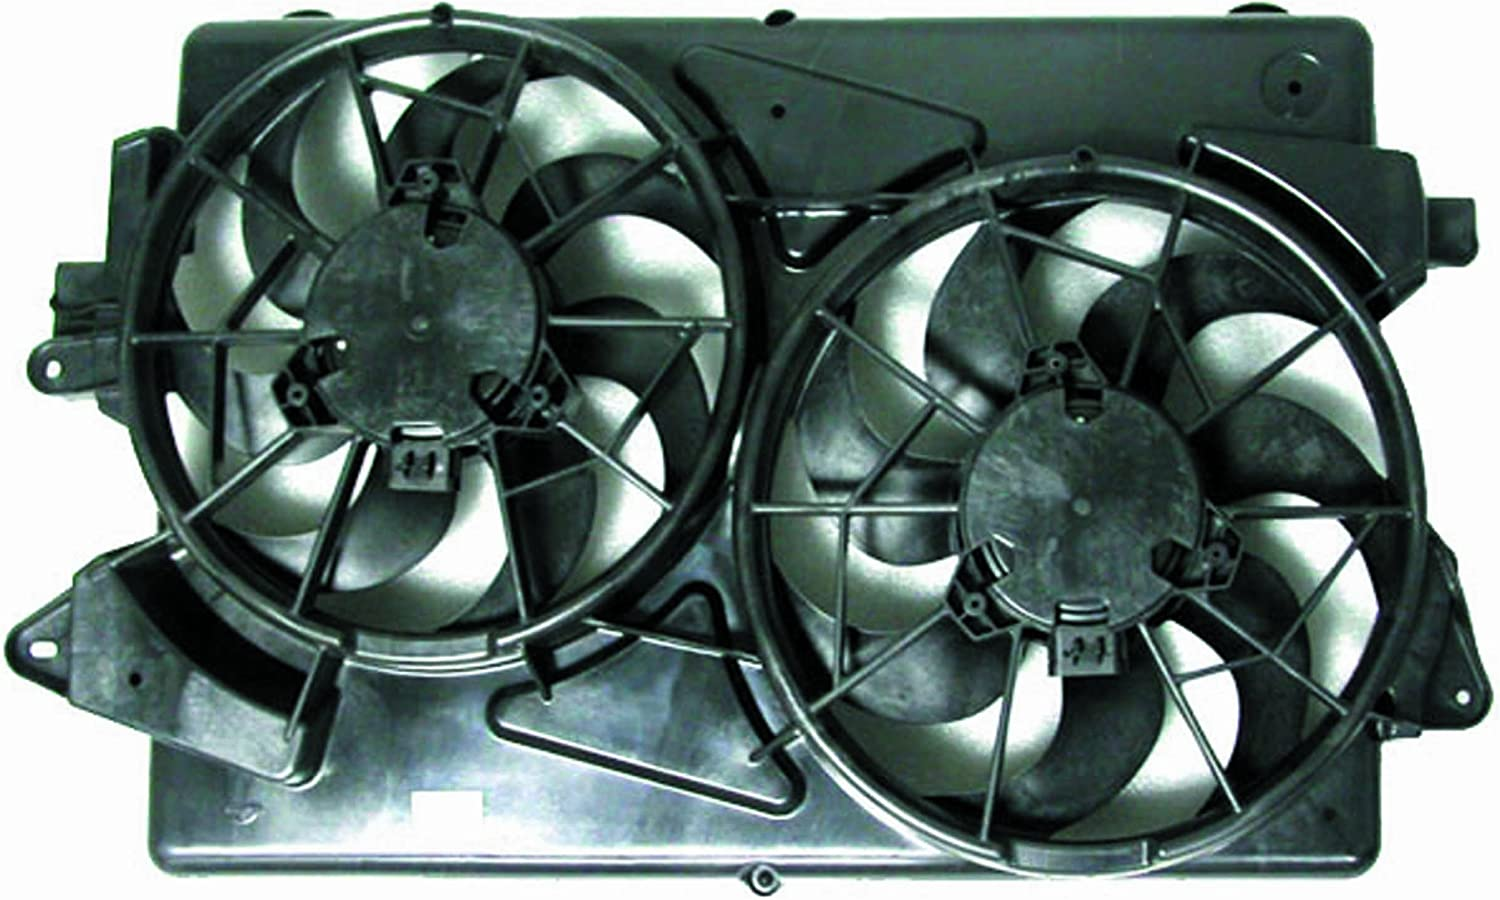 DEPO 335-55040-000 Replacement Engine Fan OFFicial store Cooling Assembly Fort Worth Mall This